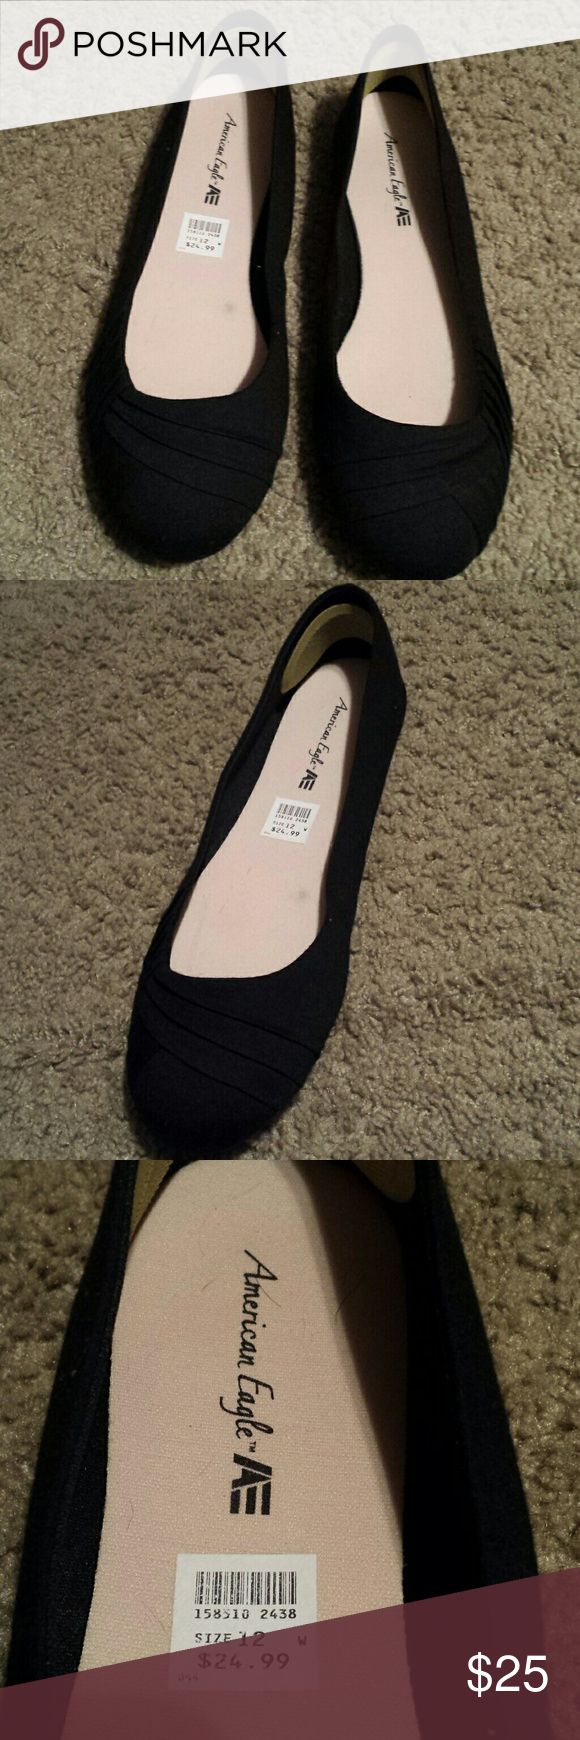 Brand new black ladies shoe Classic chic black shoe. Brand new. Fits all color American Eagle Outfitters Shoes Flats & Loafers